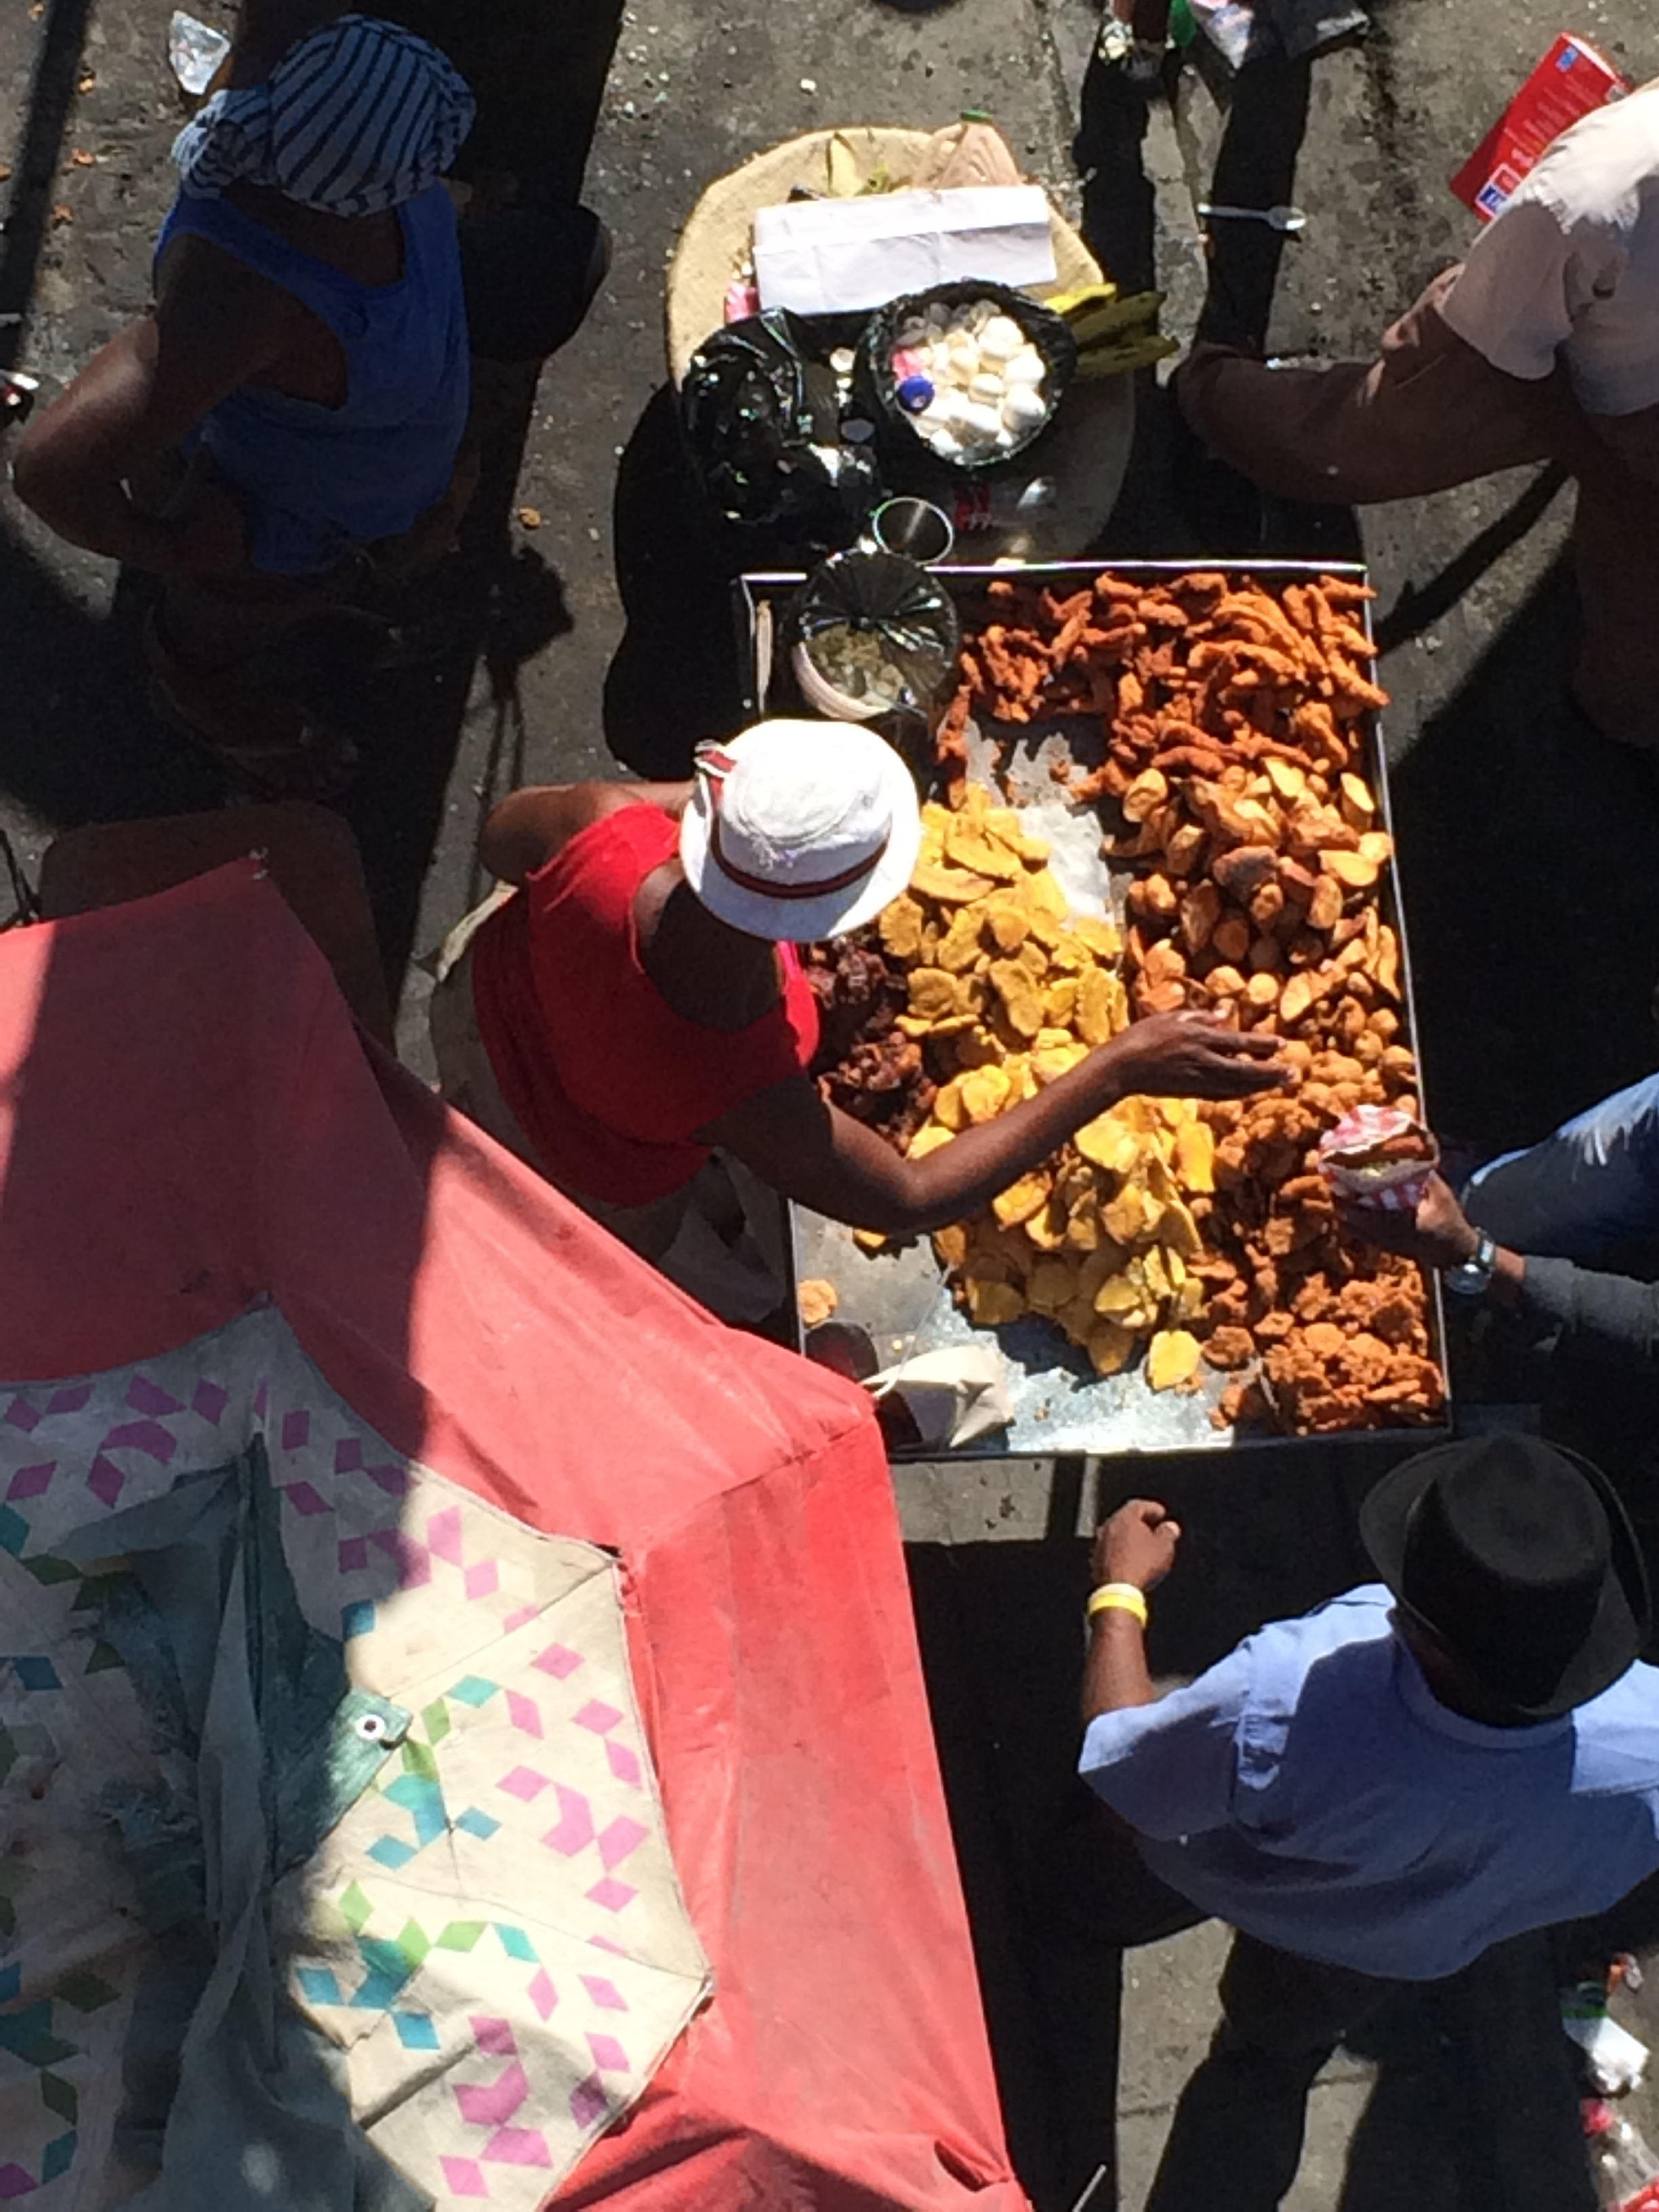 A local woman selling plantains and fried chicken. Many of the businesses that provide financial security for the families and communities are similar to this. They are often pop up businesses that are portable, and do not rely on a brick and mortar base